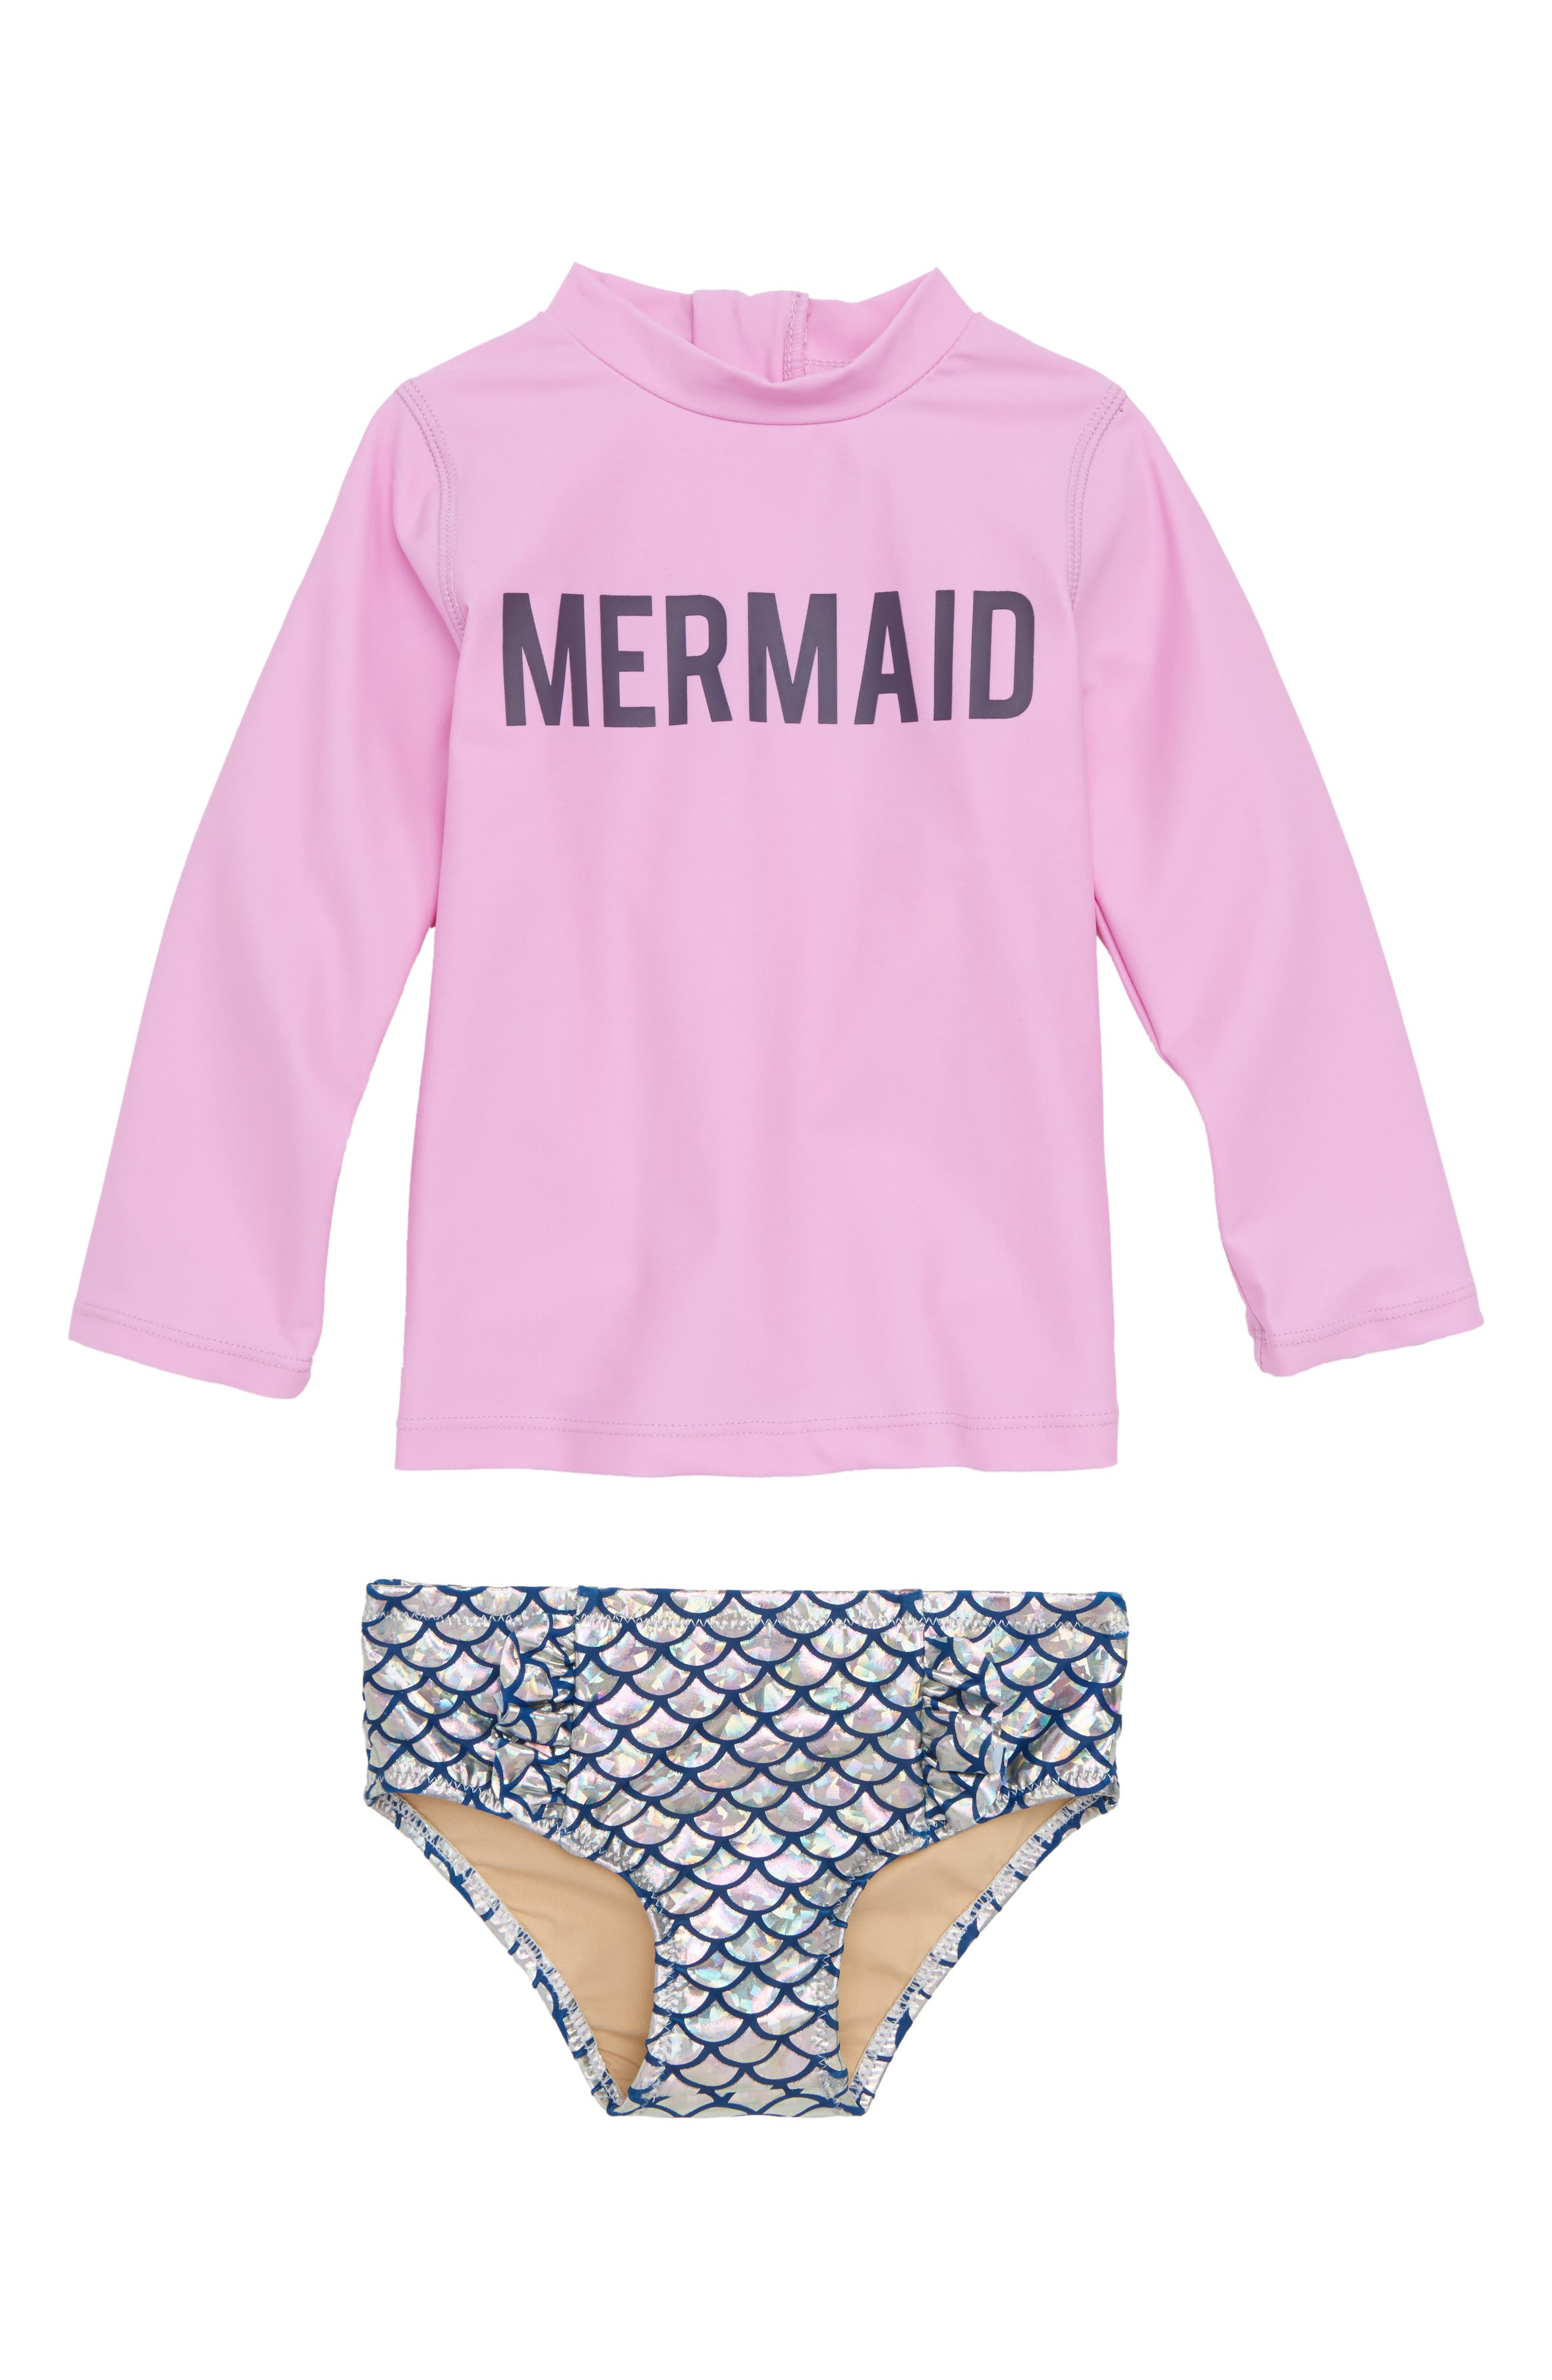 Mermaid Magic Rashguard Two-Piece Swimsuit,                             Main thumbnail 1, color,                             Purple